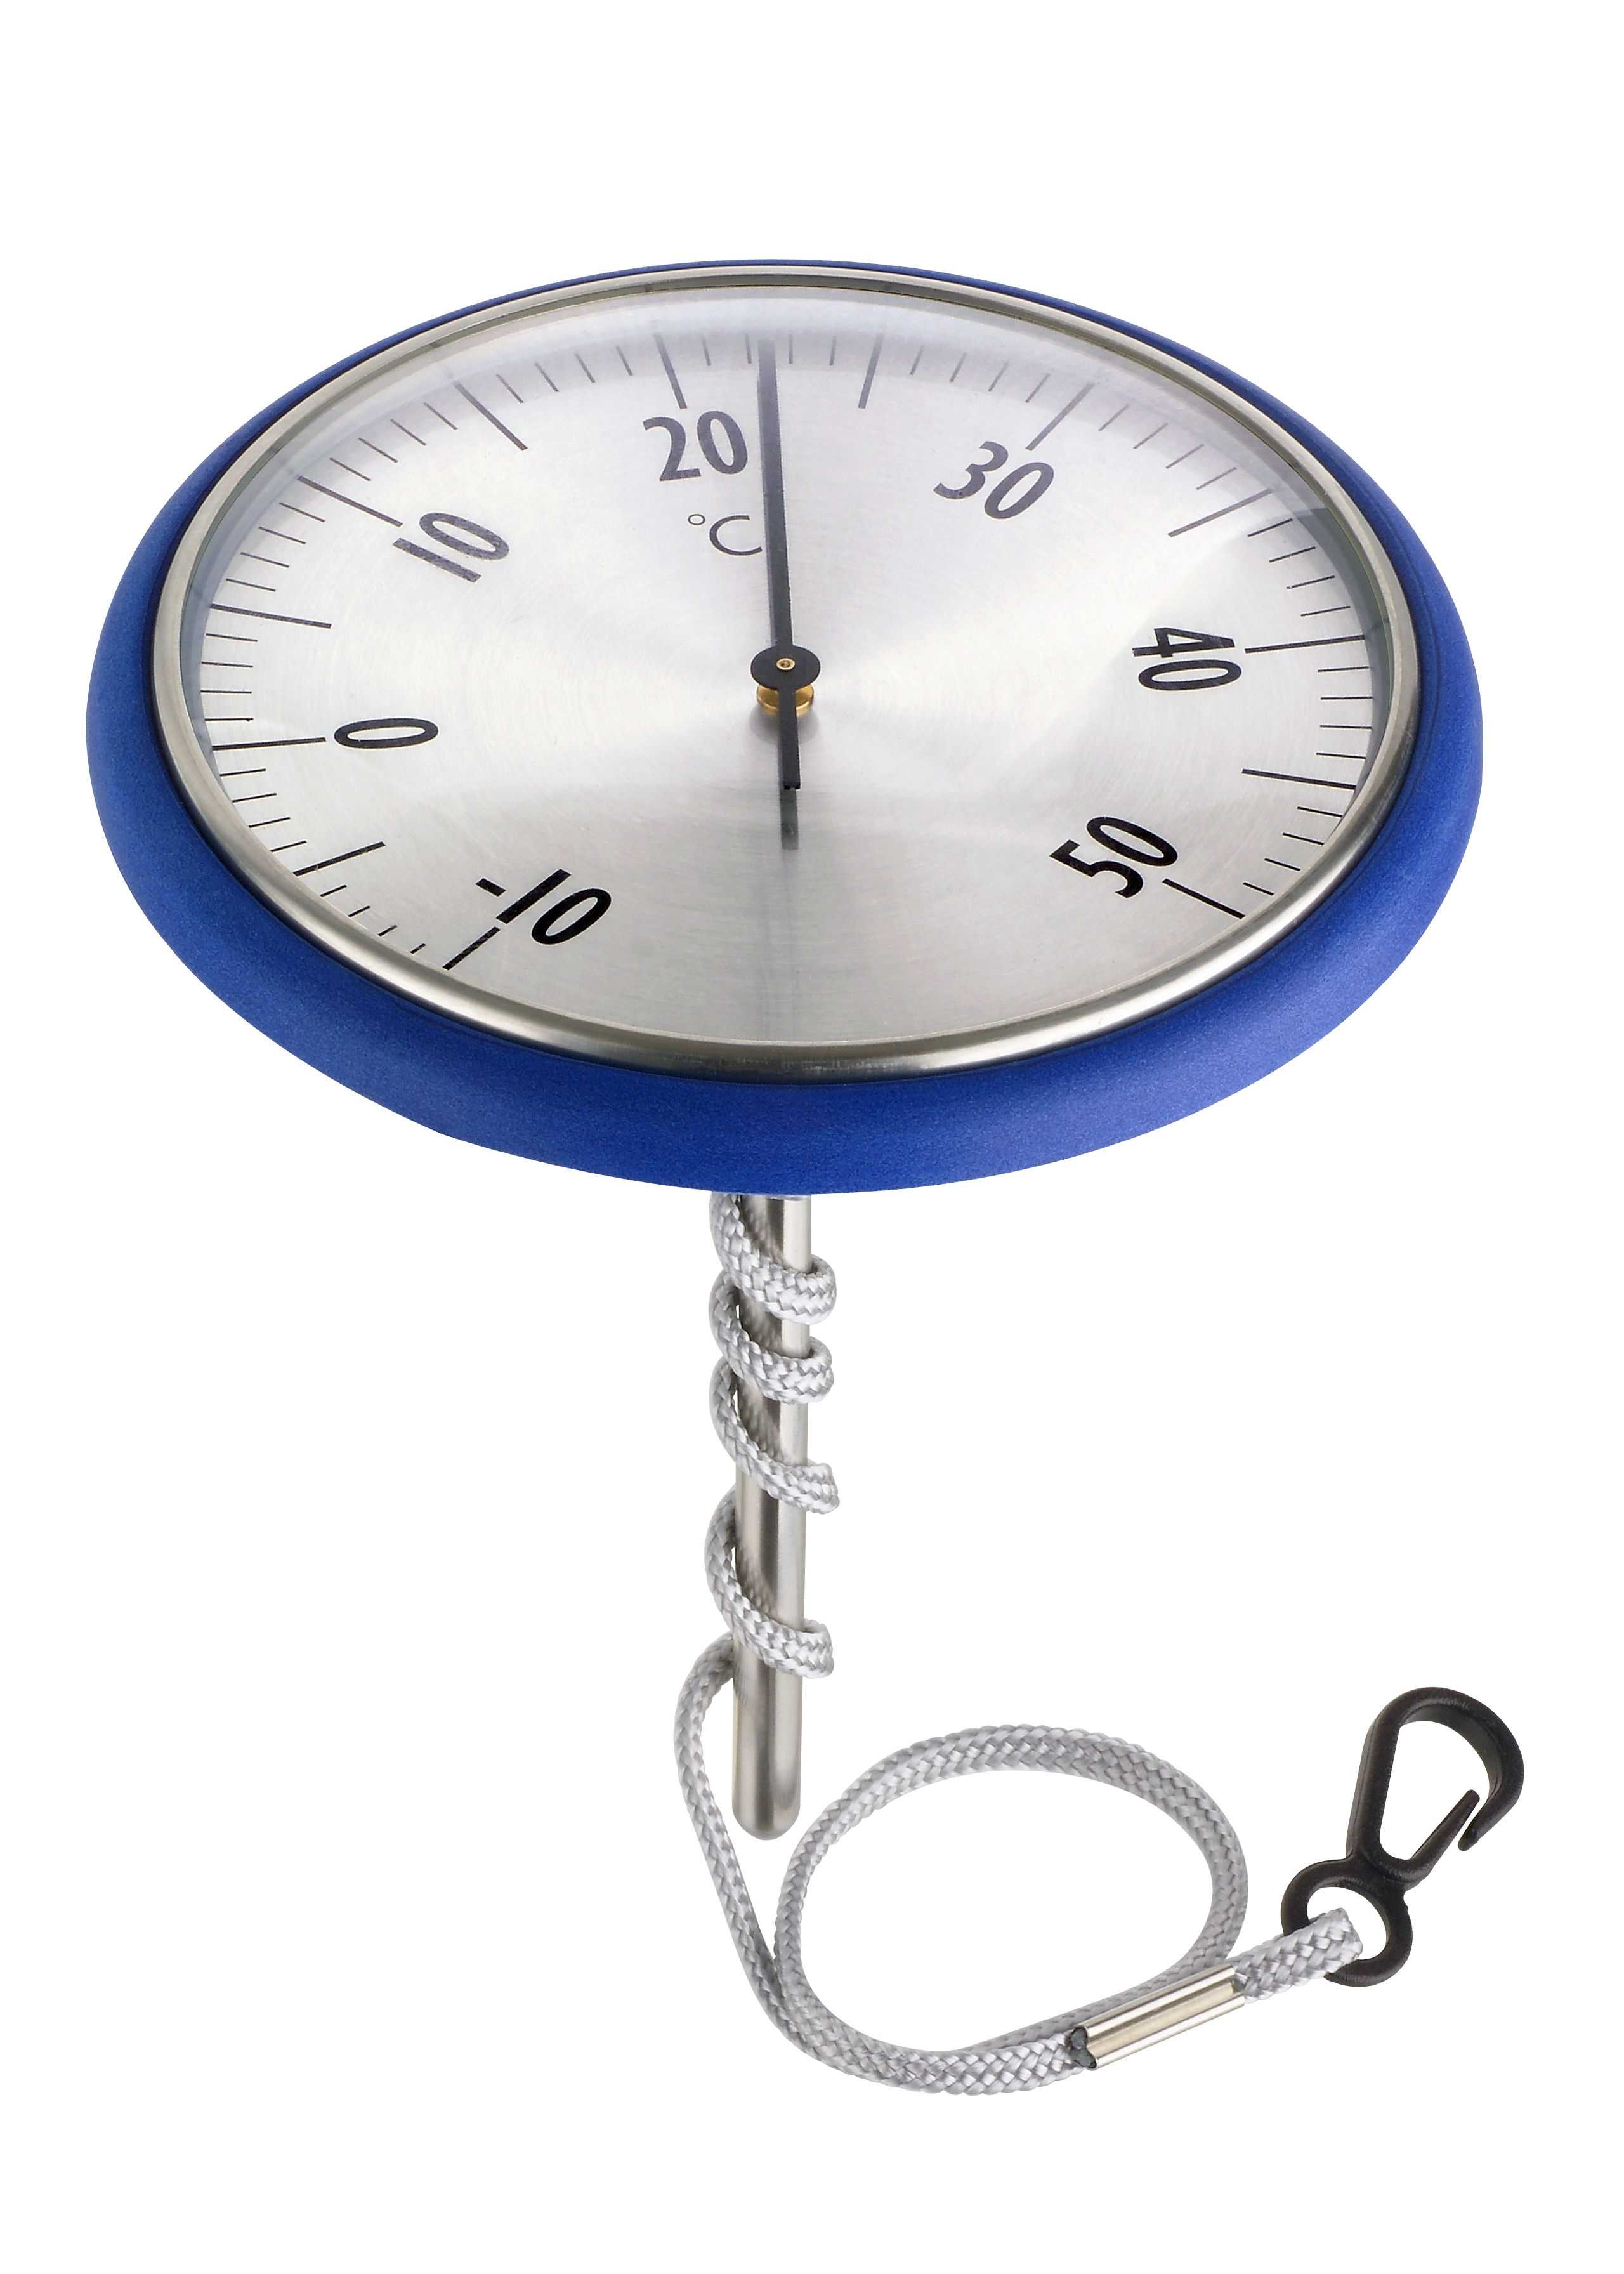 TFA Analoges Poolthermometer